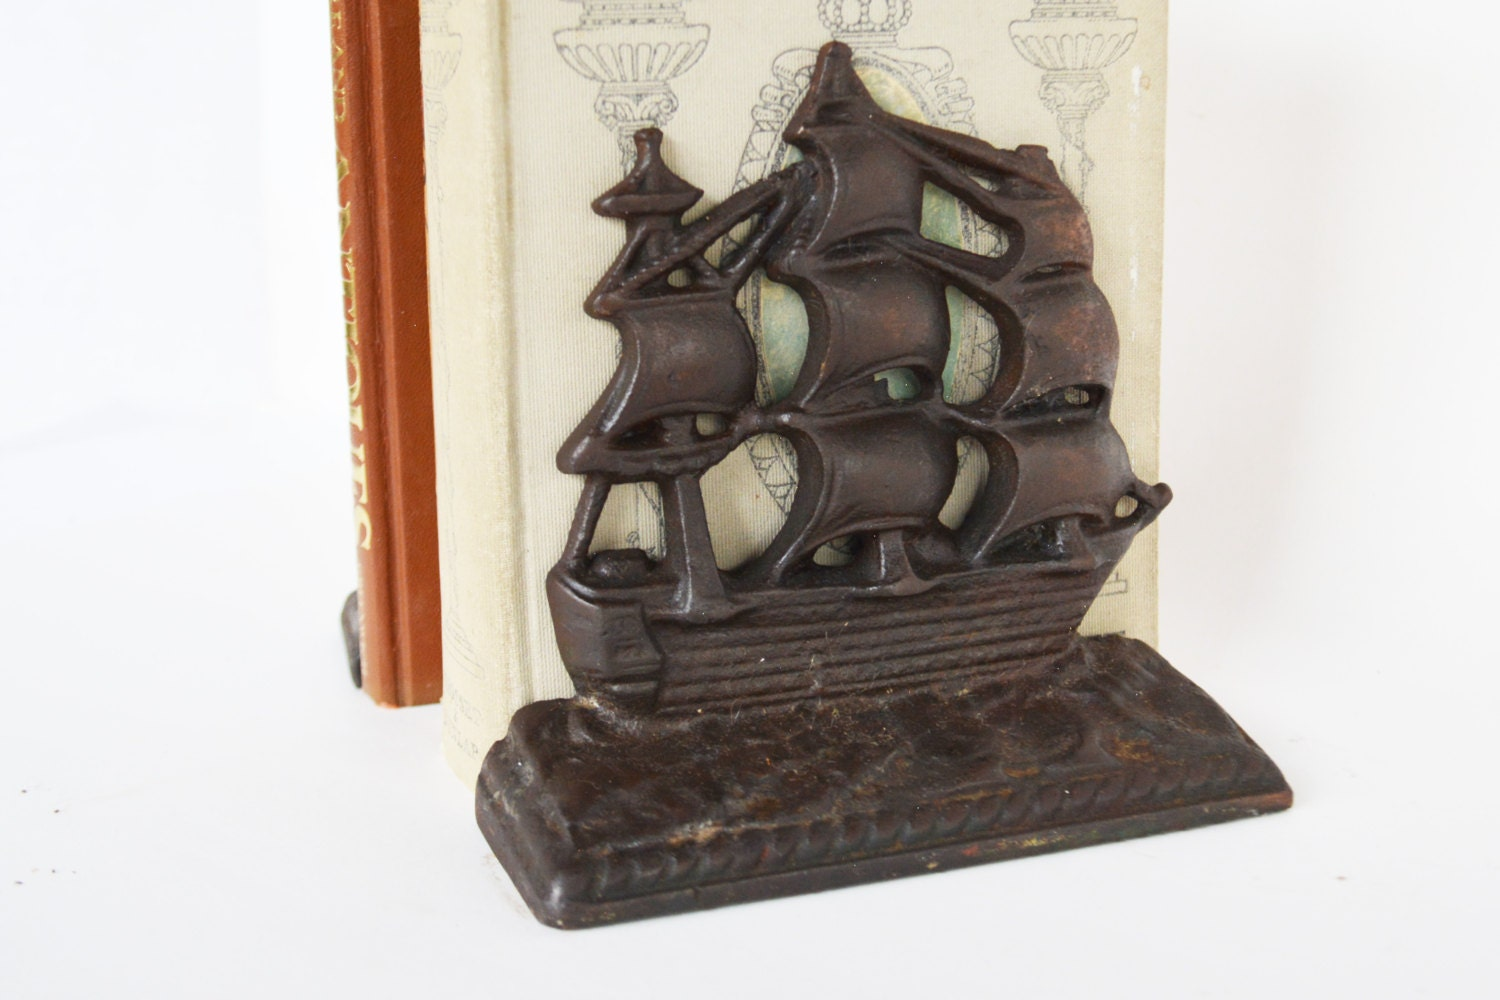 Cast Iron Bookends Vintage Ship Bookends Nautical Ships Old